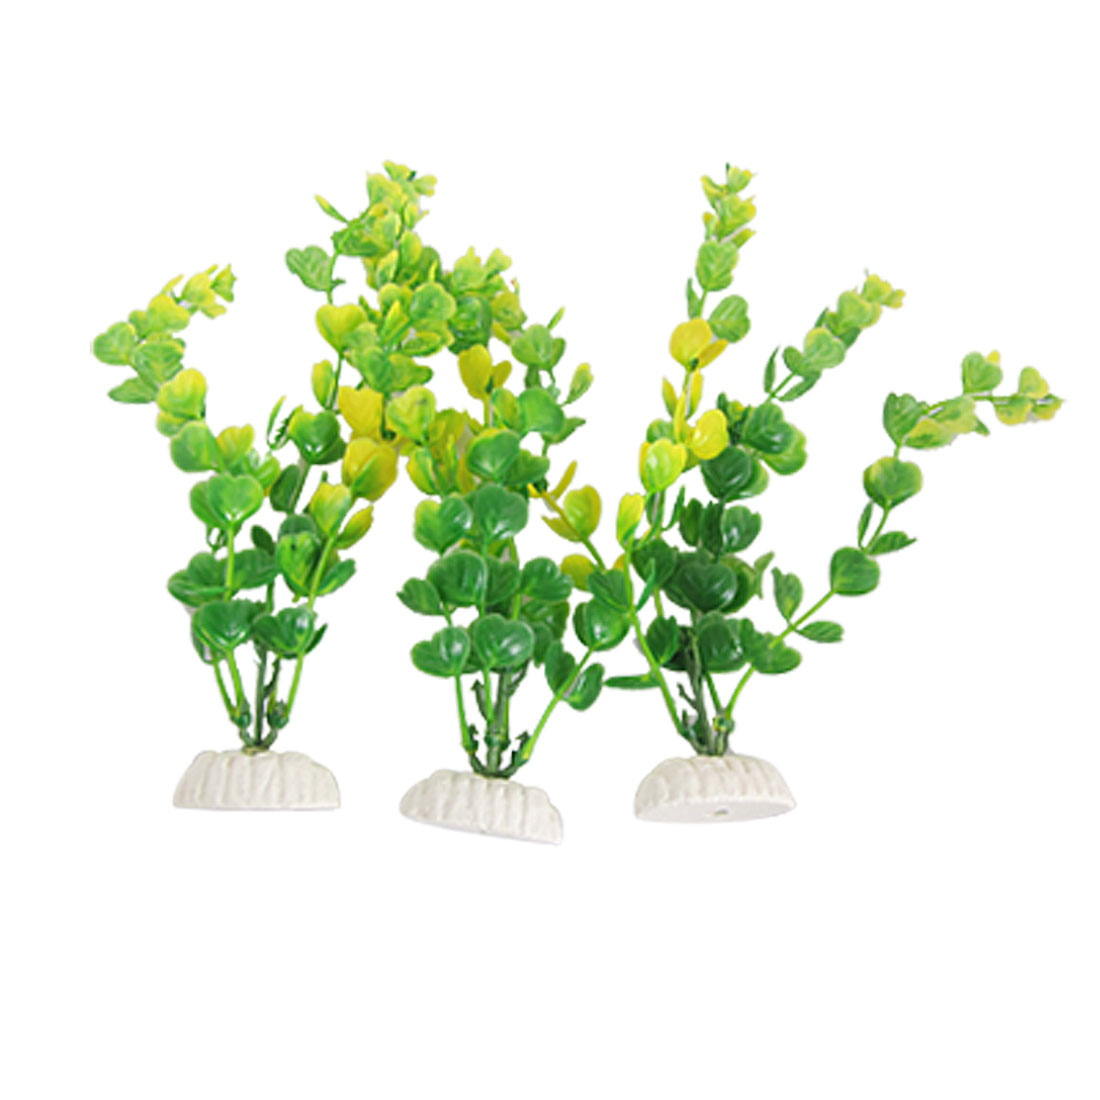 3Pcs Aquarium Lifelike Aquatic Plastic Plant Ornament Green Yellow